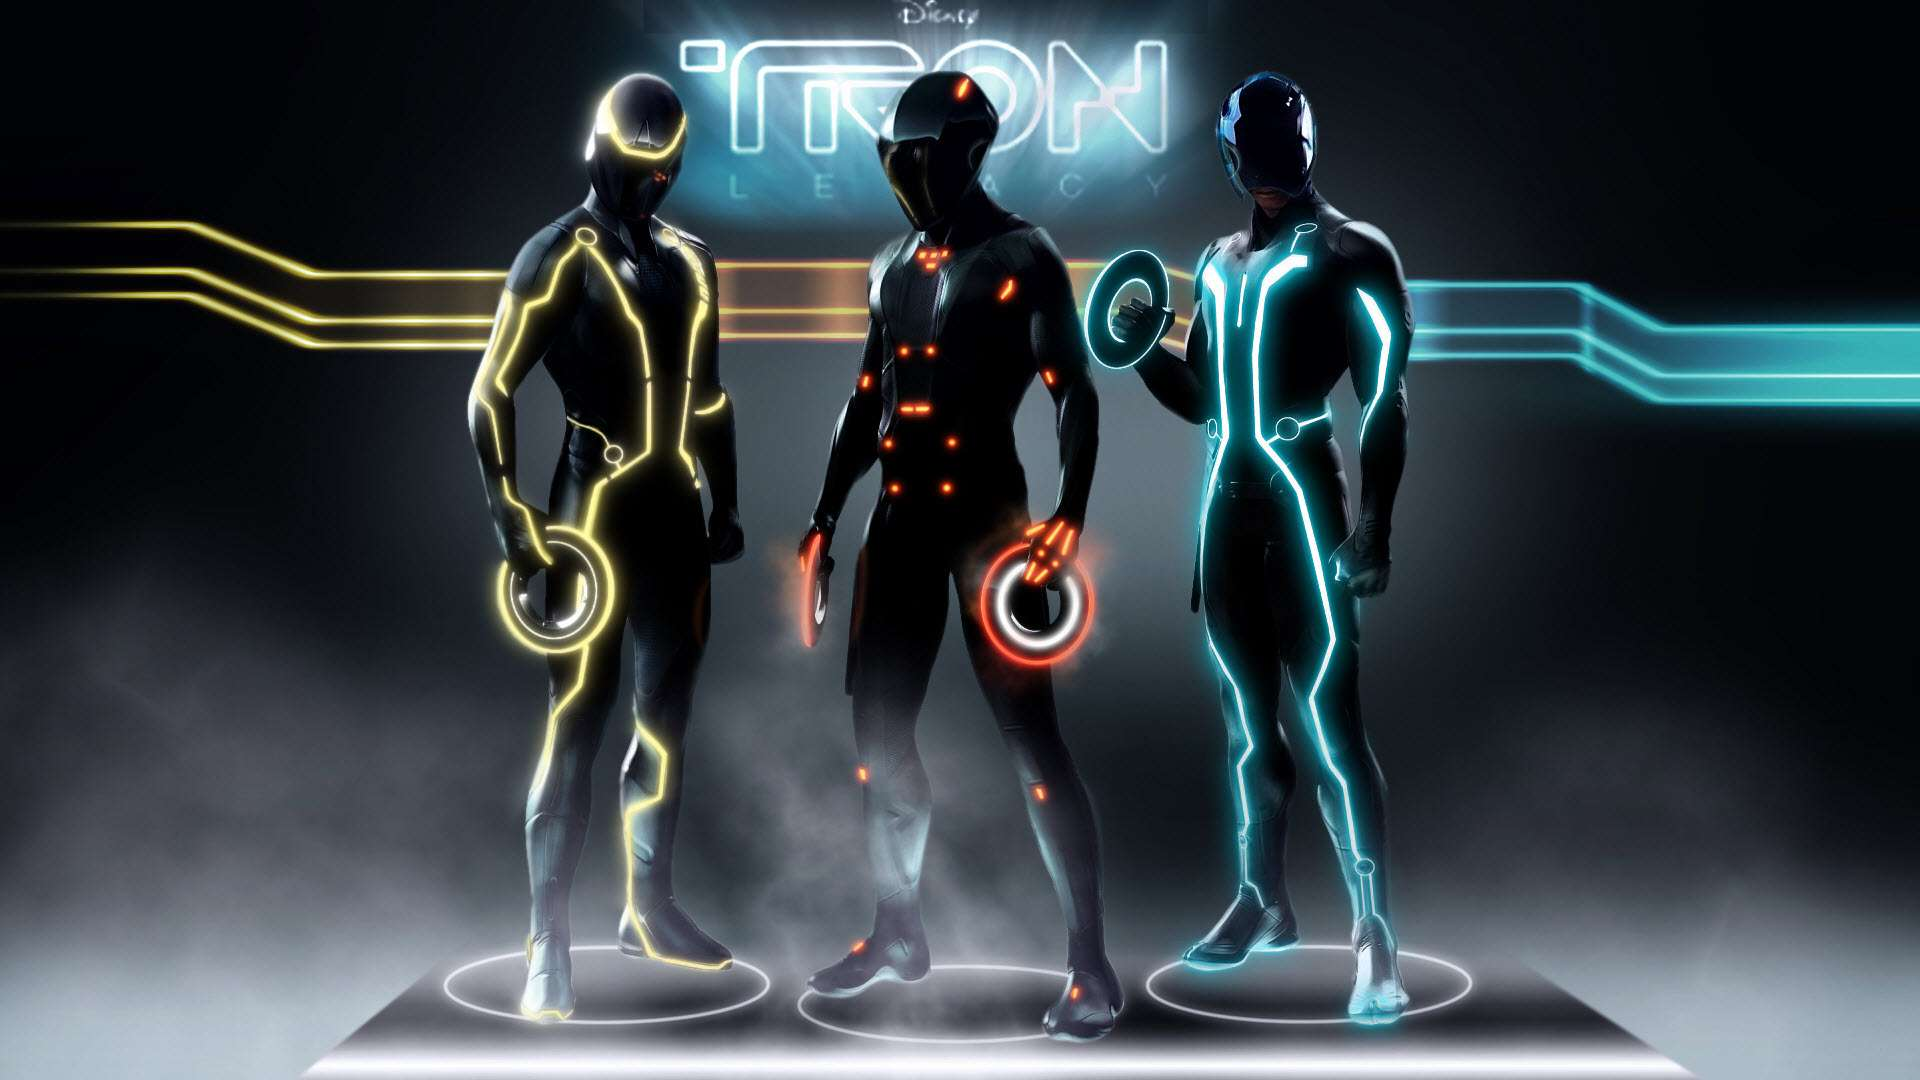 Tron Legacy Characters Wallpapers